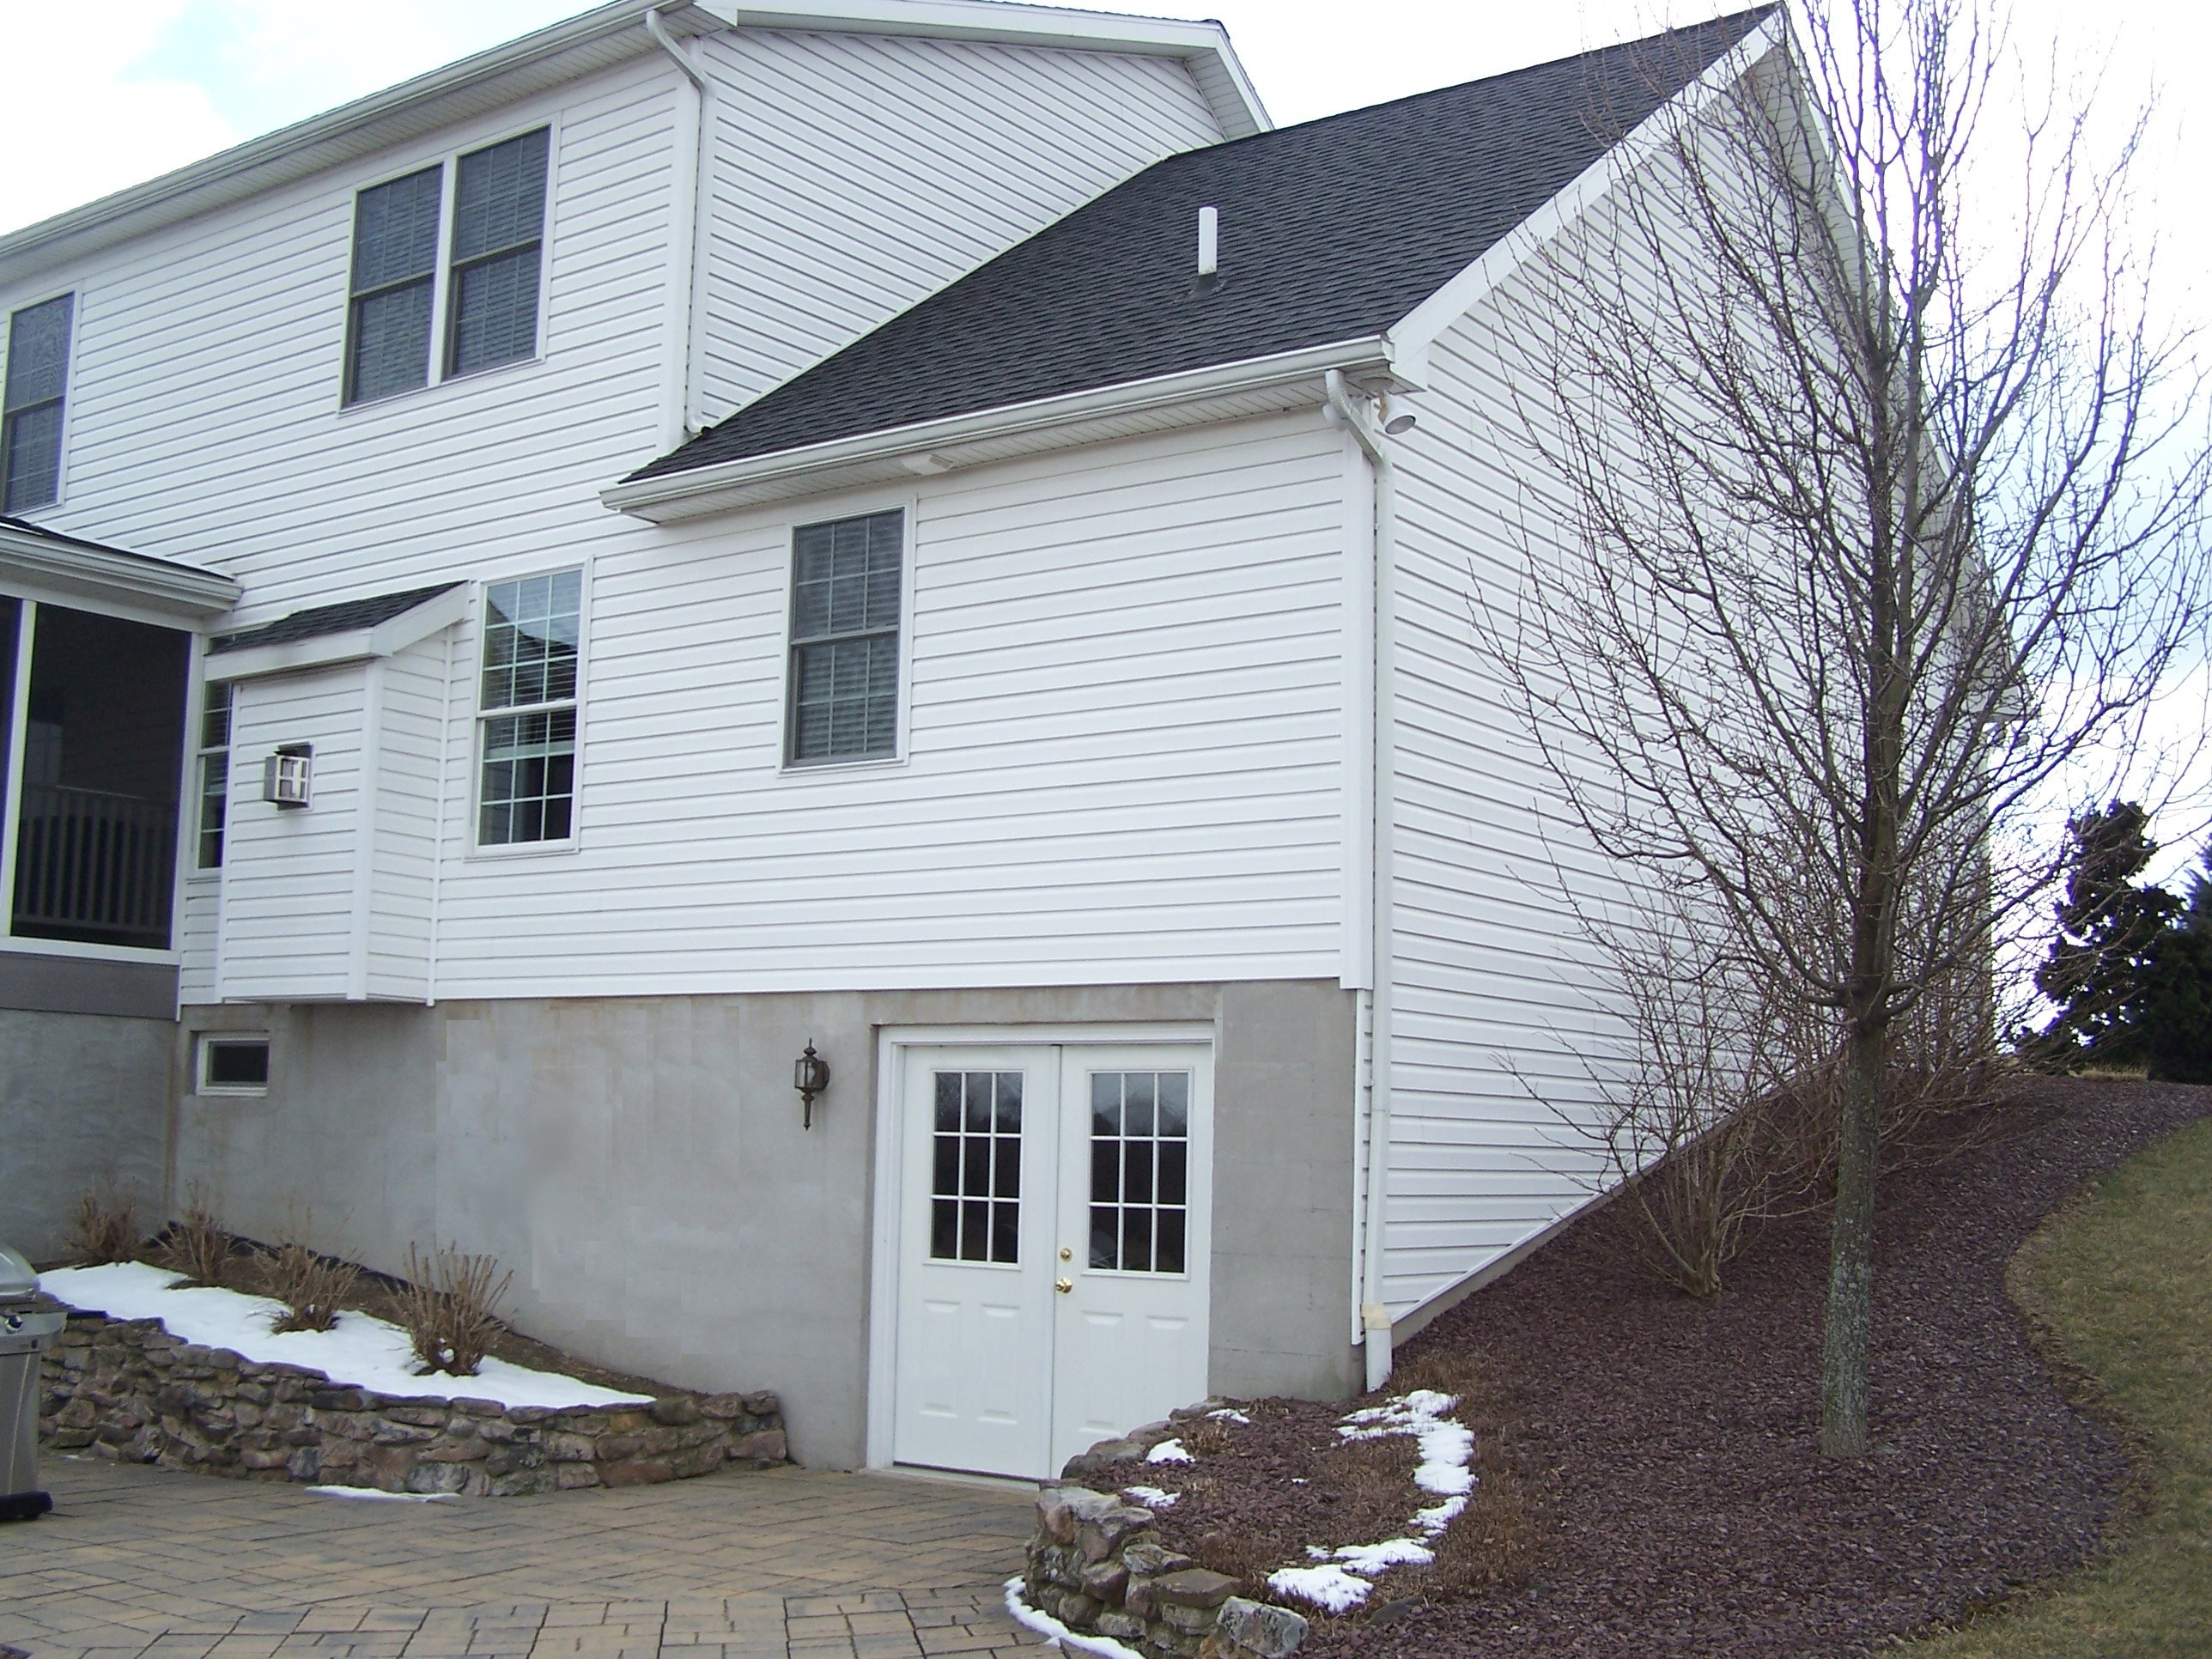 Installation of basement siding with their own hands. Technology, installation features 20